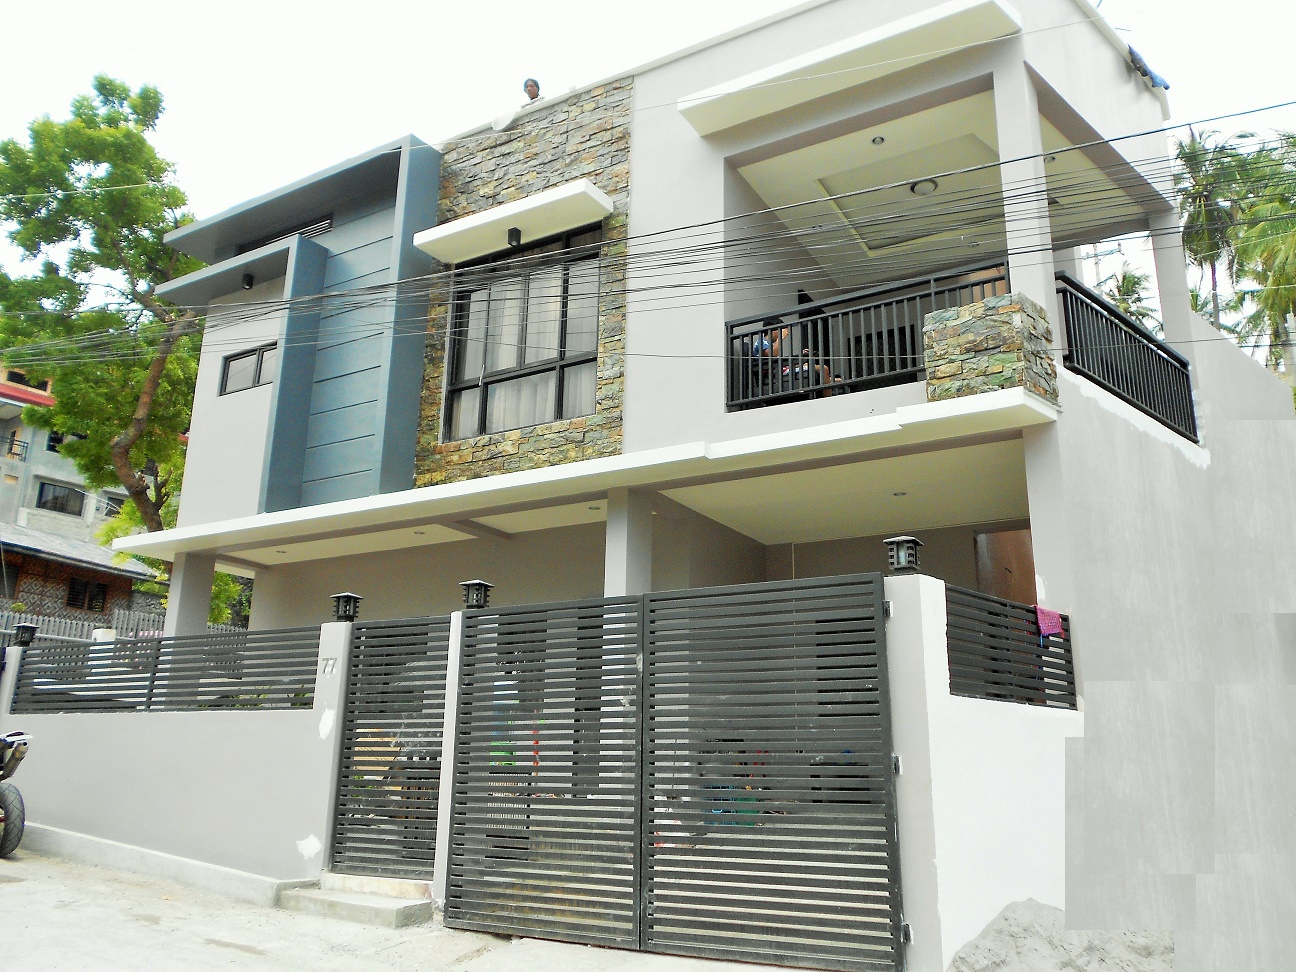 Elizabeth construction affordable and easy to deal for Up and down house design in the philippines